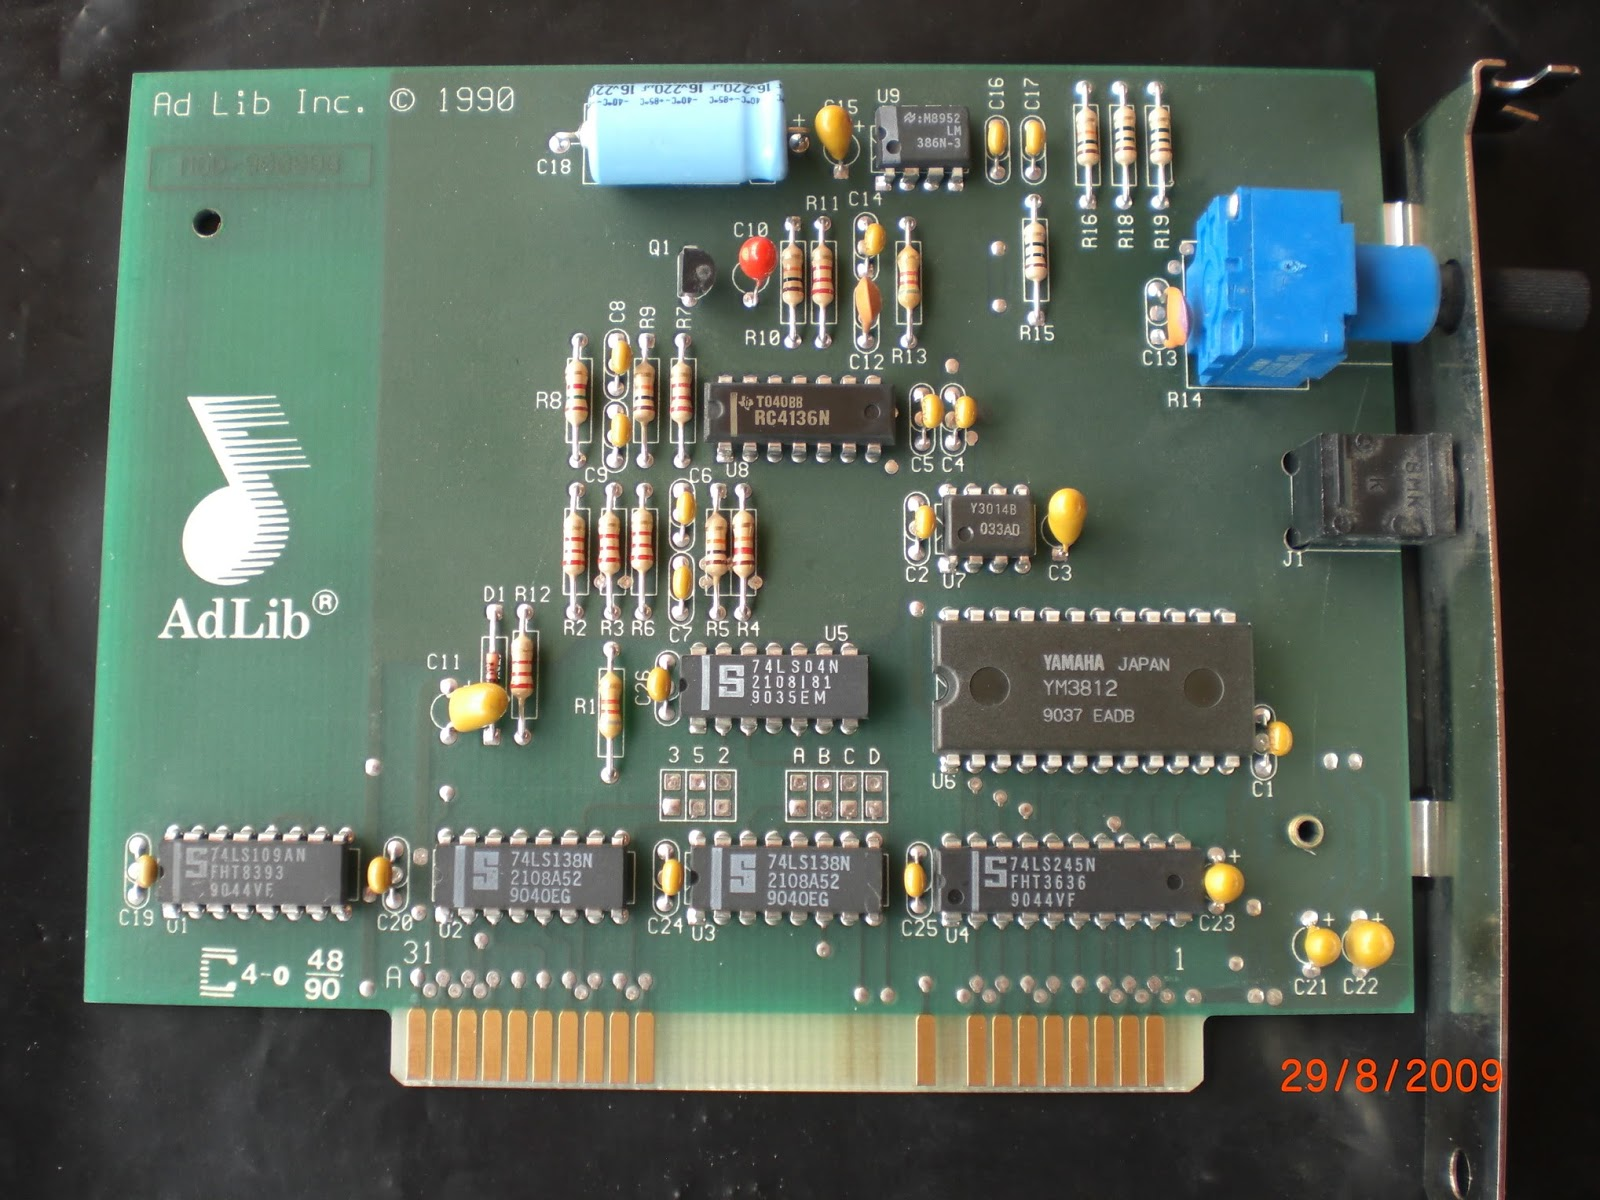 Nerdly Pleasures The First Sound Card Analog And Digital Integrated Circuits 2009 June Engineering Itself Was Made Entirely From Off Shelf Parts A Pair Of Specialized All 1987 Cards Some 1990